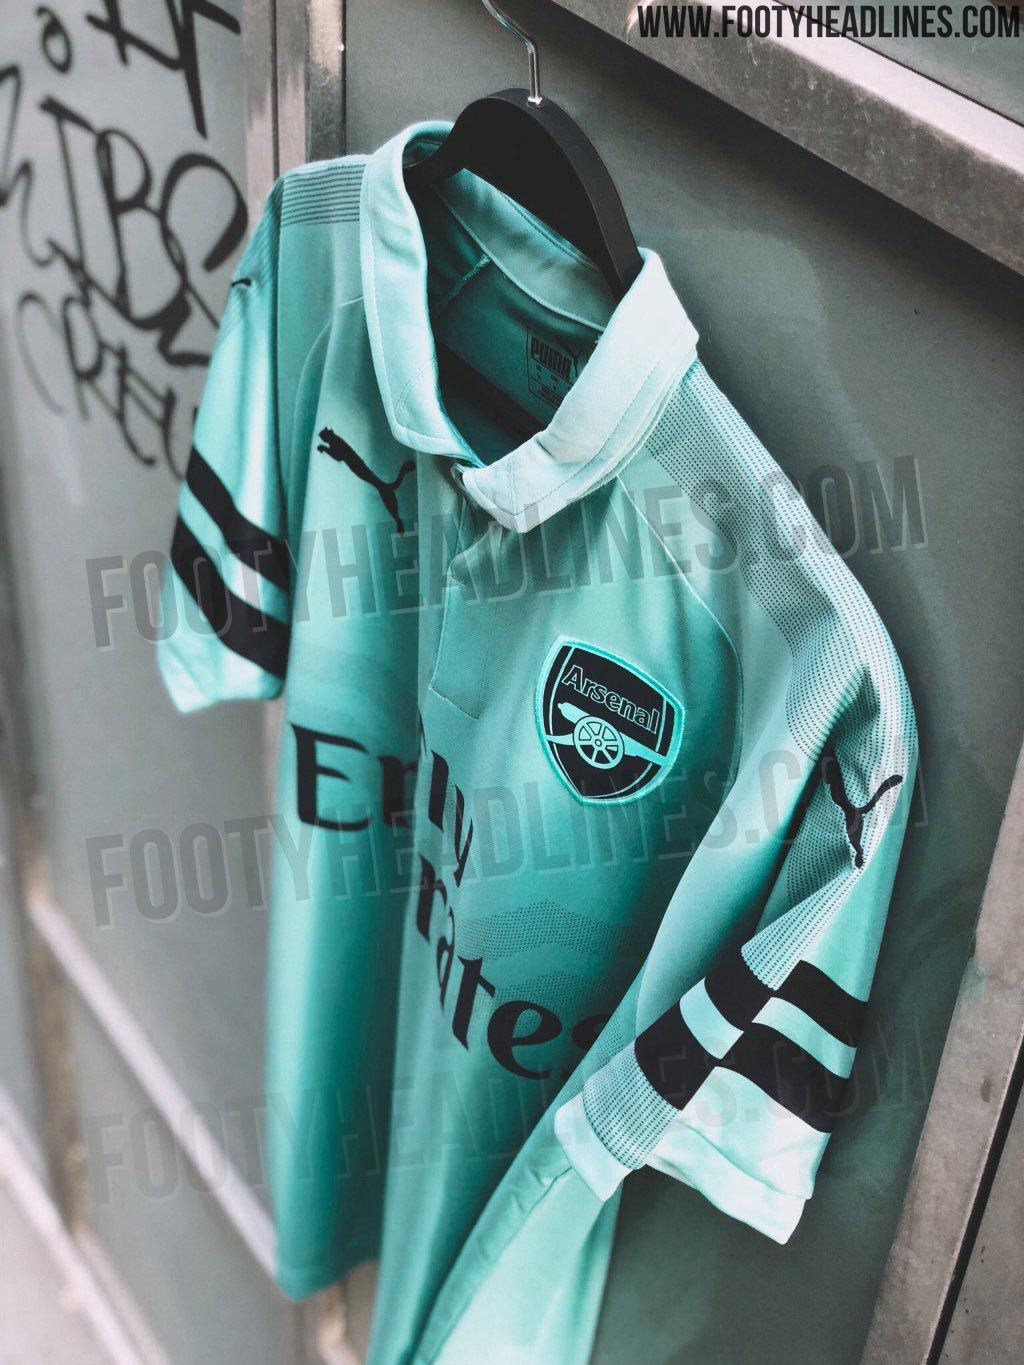 76c48a6d Arsenal 18-19 Third Kit Leaked - Footy Headlines | jersey | Arsenal ...